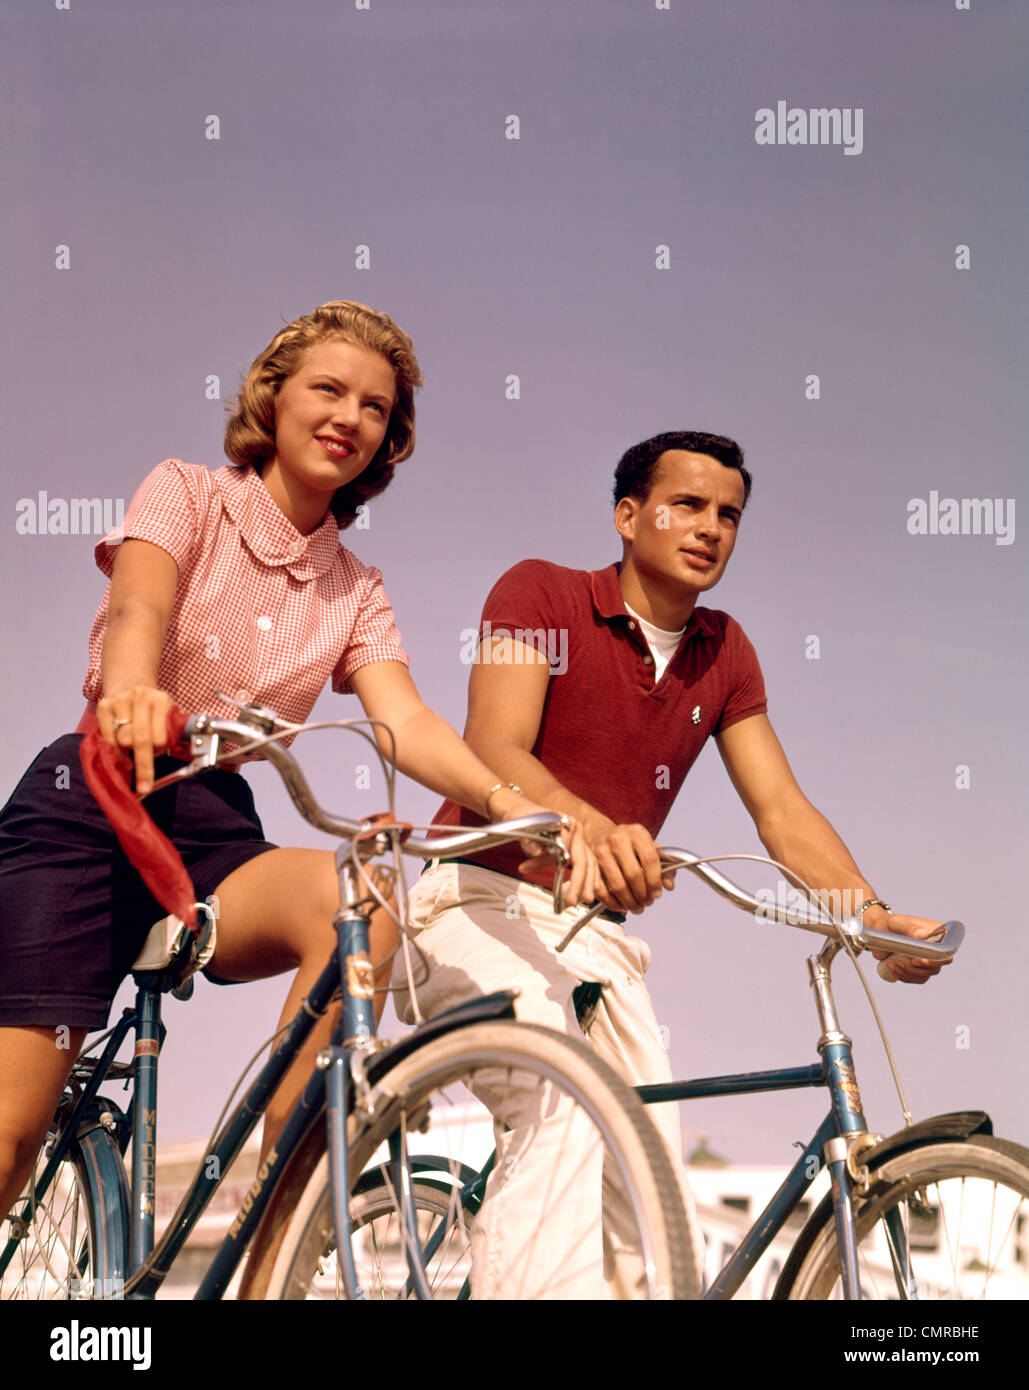 1950s 1960s COUPLE MAN WOMAN Riding BICYCLES OUTDOORS - Stock Image